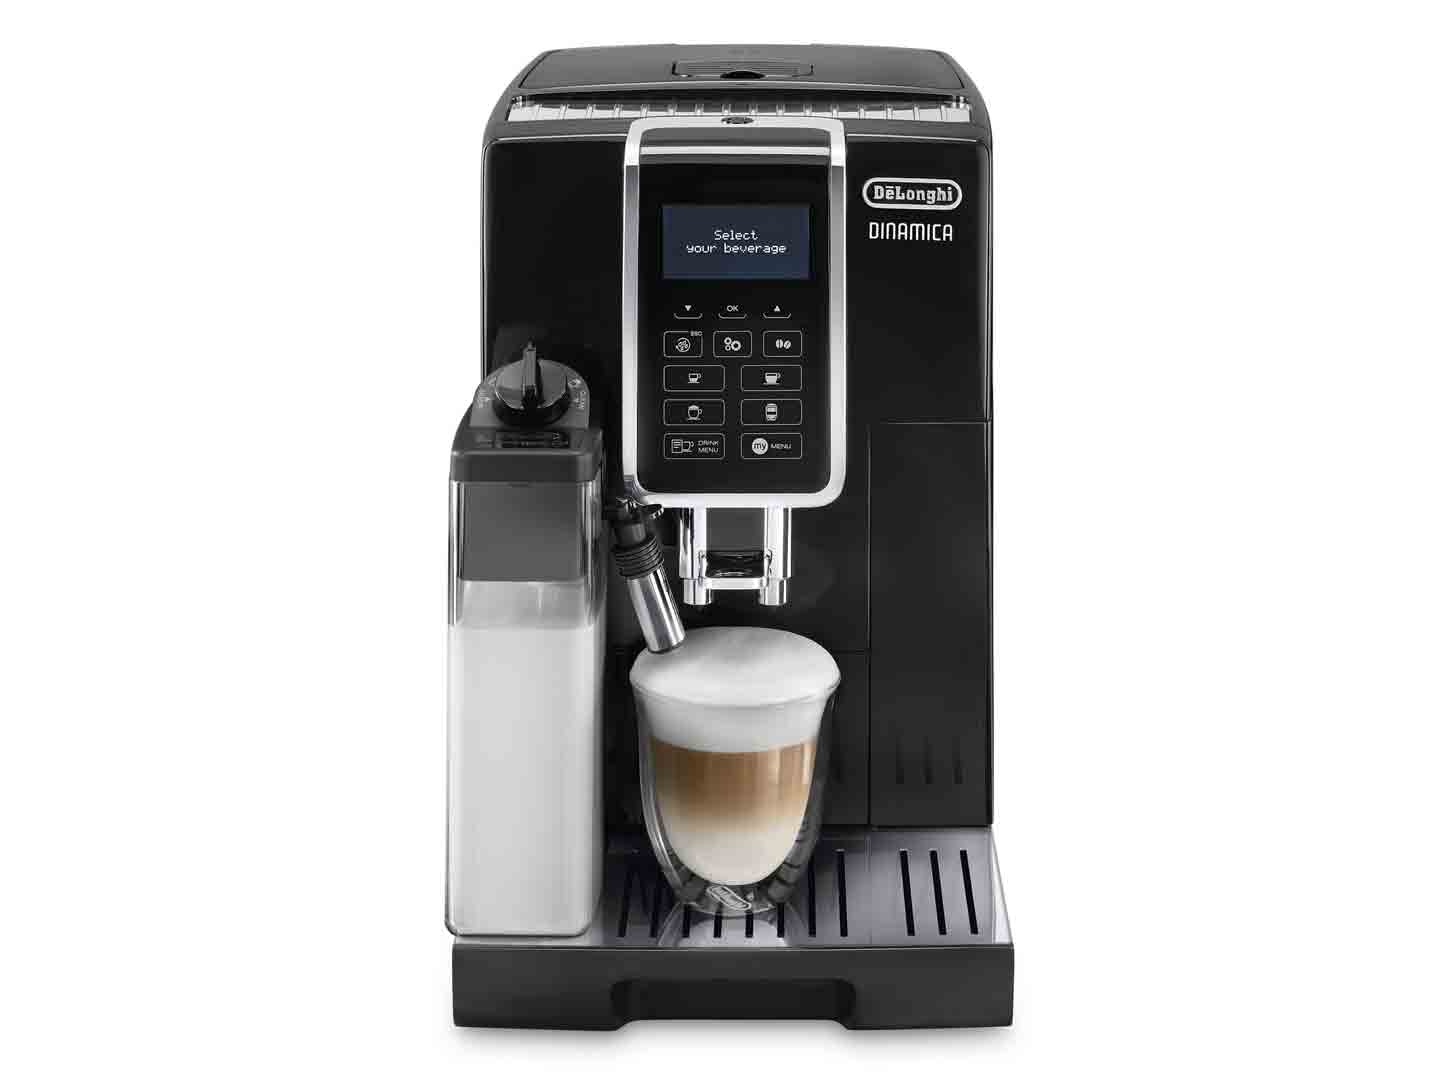 Dinamica ECAM 35055B Fully Automatic Coffee Machine makes Cappuccino at the touch of a button